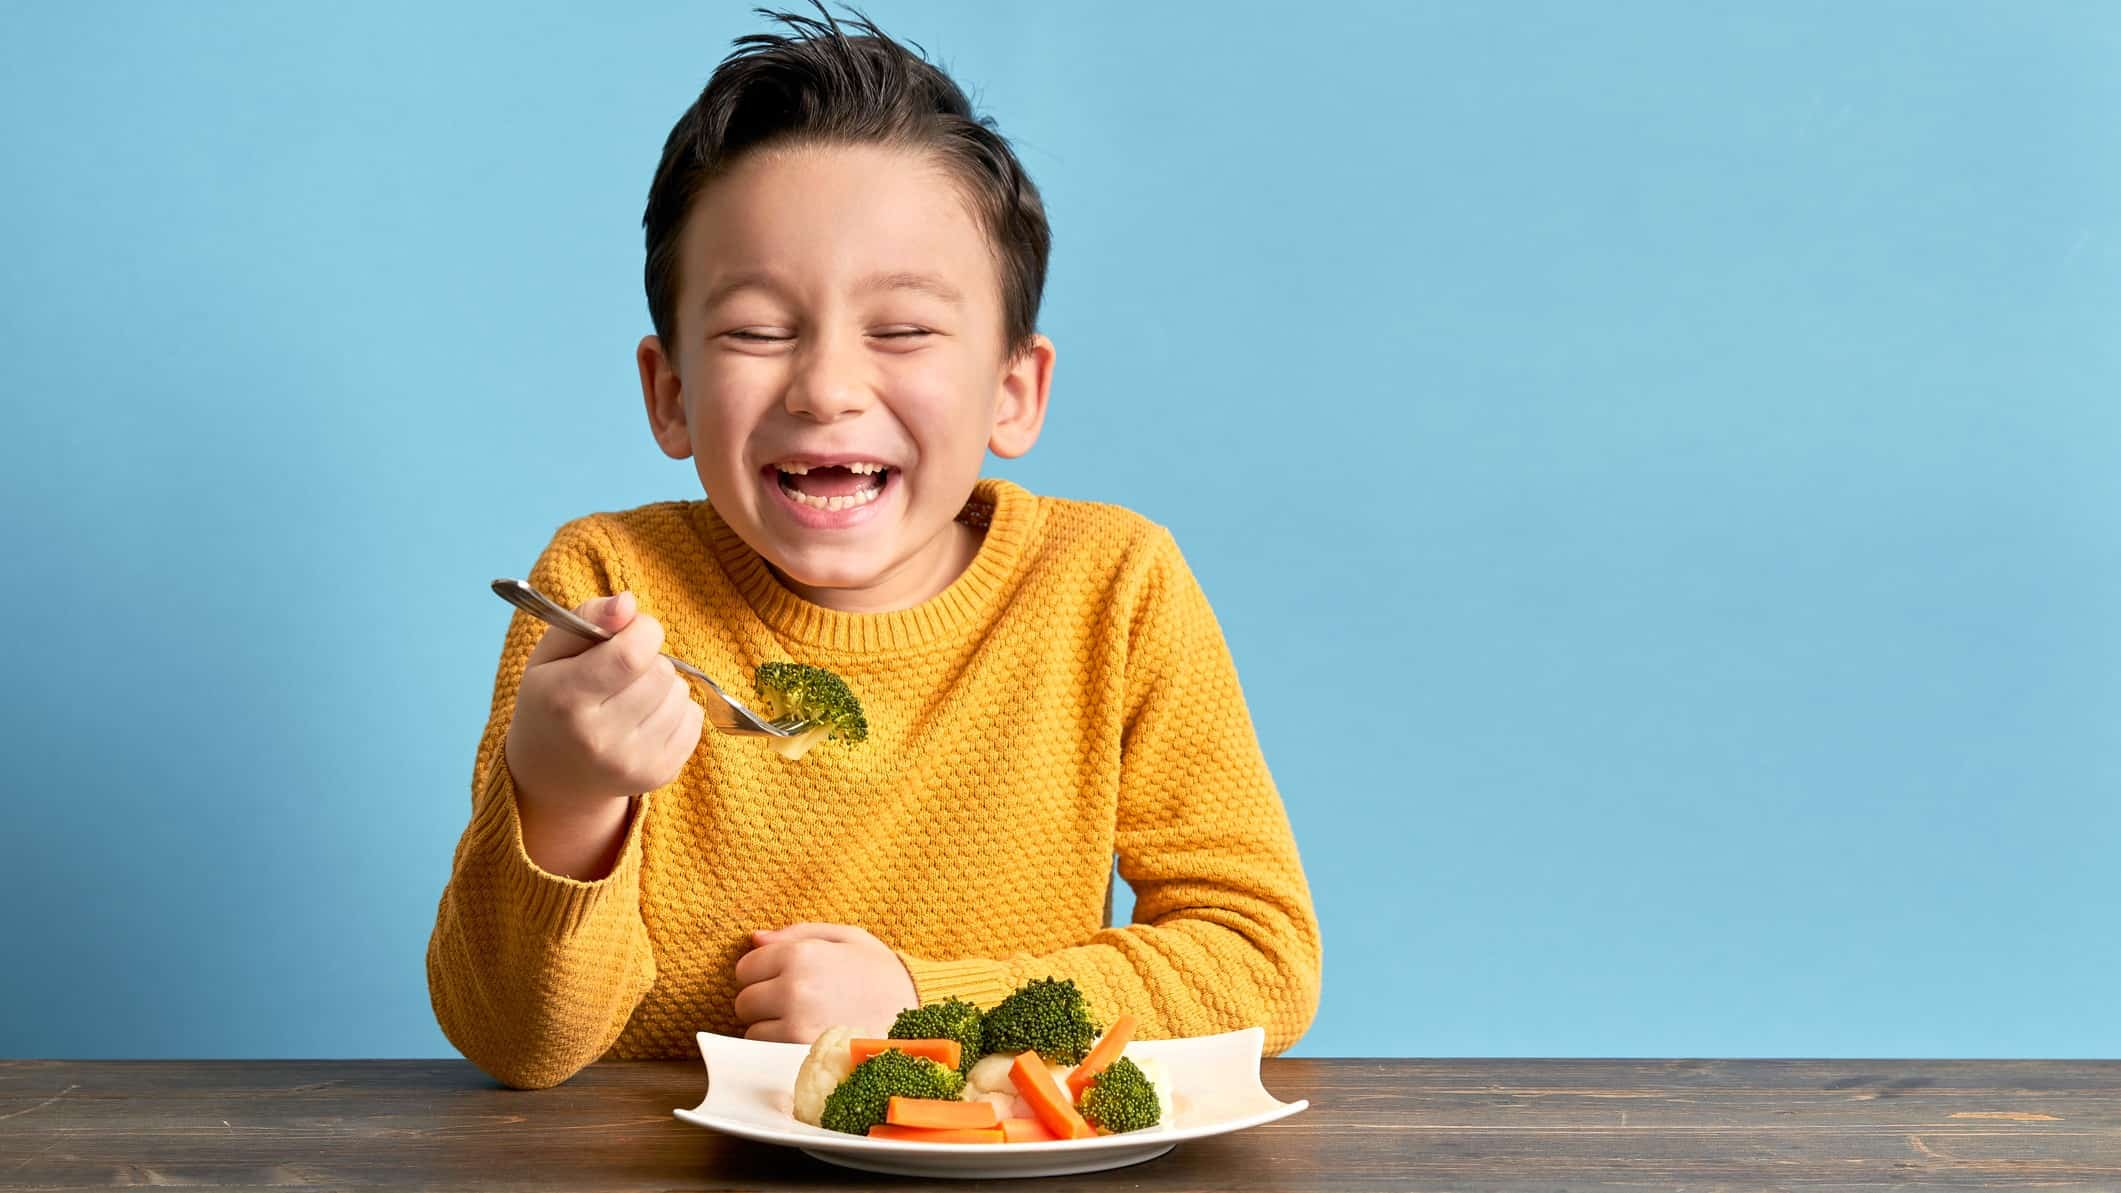 happy child eating healthy food from a bowl with fork in hand